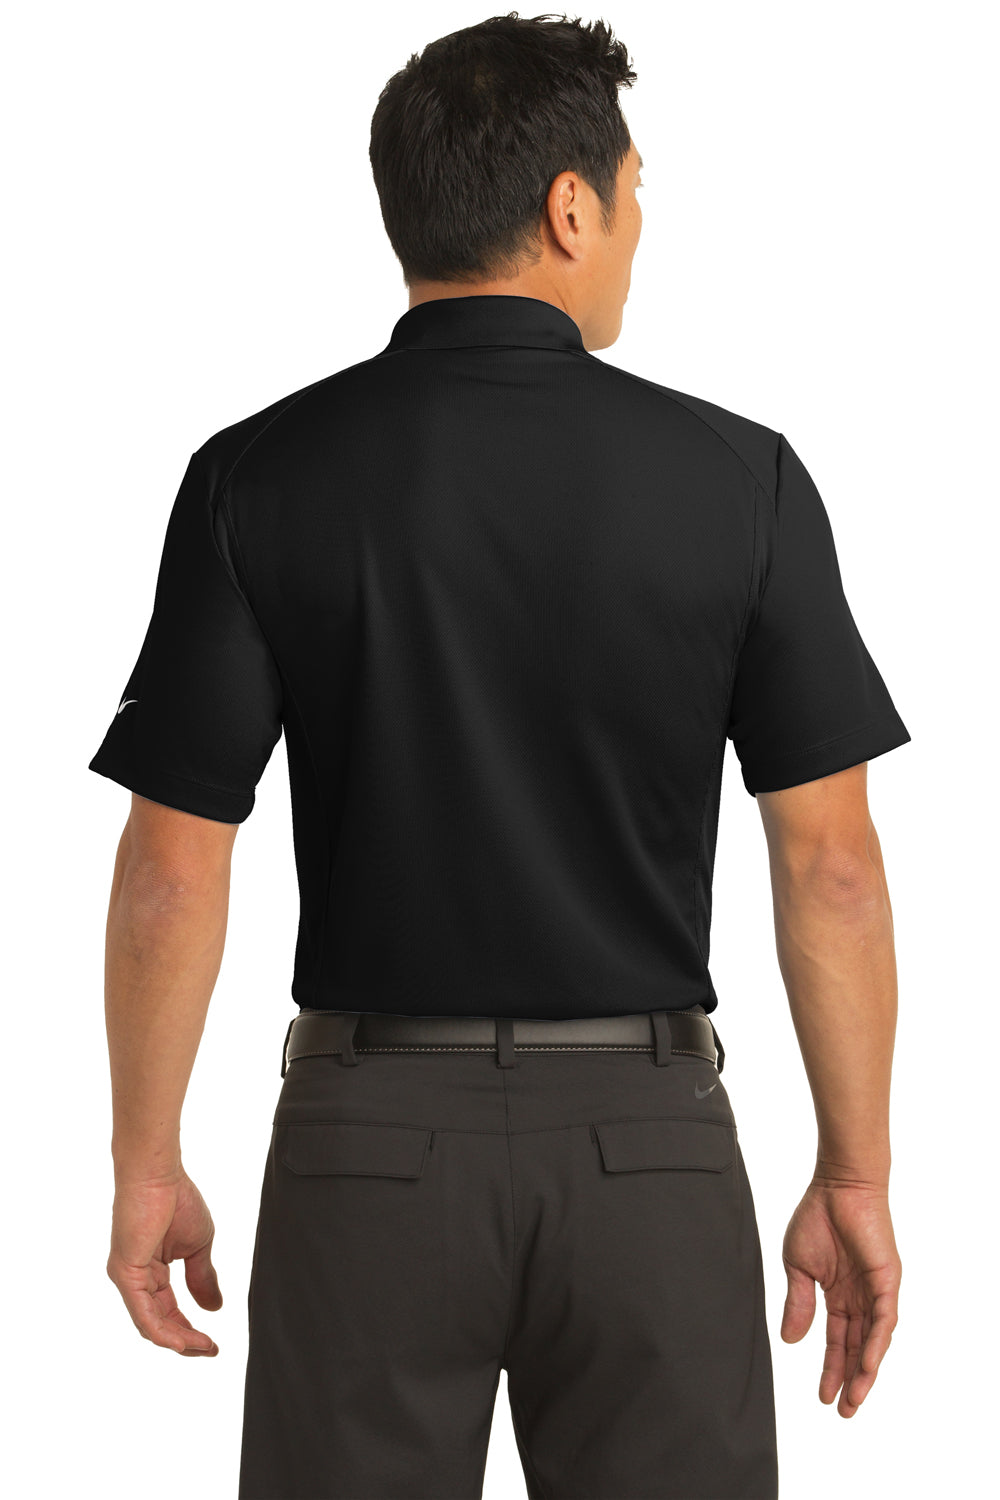 Nike 267020 Mens Classic Dri-Fit Moisture Wicking Short Sleeve Polo Shirt Black Back